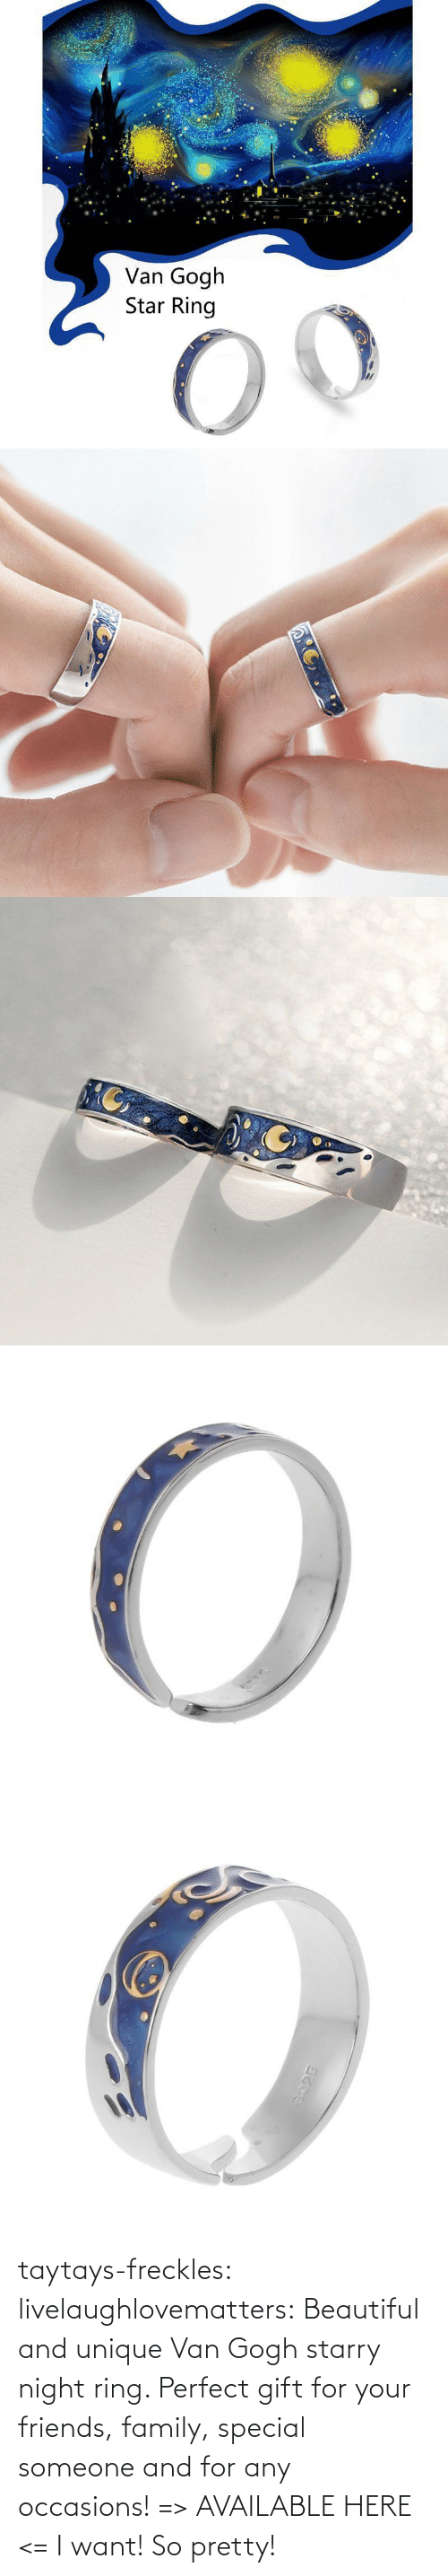 So Pretty: taytays-freckles: livelaughlovematters:  Beautiful and unique Van Gogh starry night ring. Perfect gift for your friends, family, special someone and for any occasions! => AVAILABLE HERE <=    I want! So pretty!